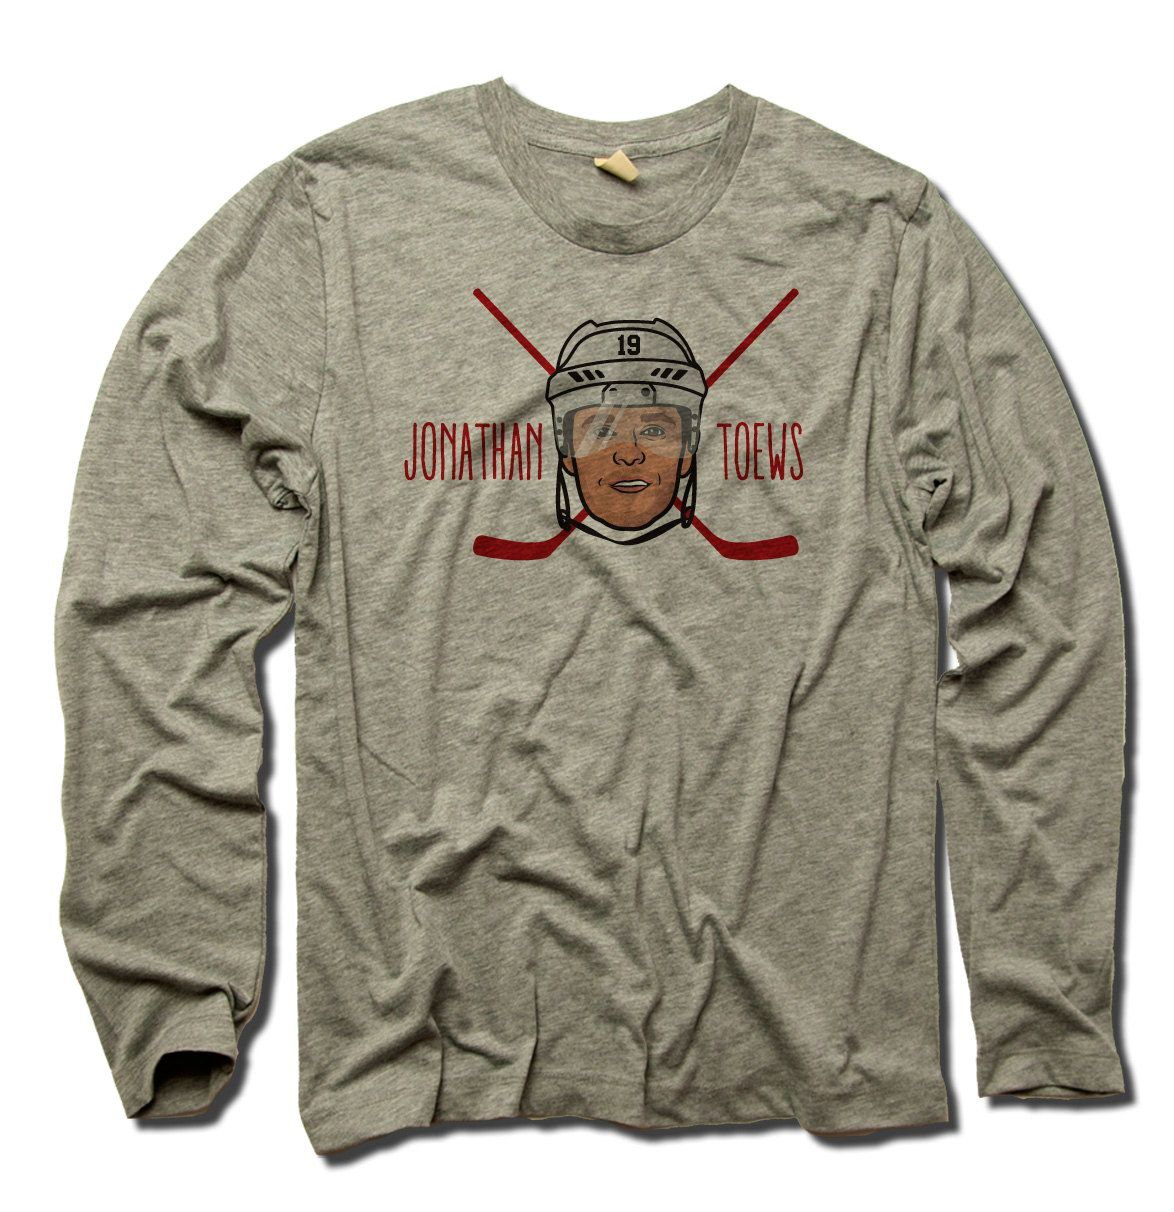 Jonathan Toews Officially Licensed NHLPA Chicago Men's Long Sleeve Tee S-2XL Jonathan Toews Cross Check